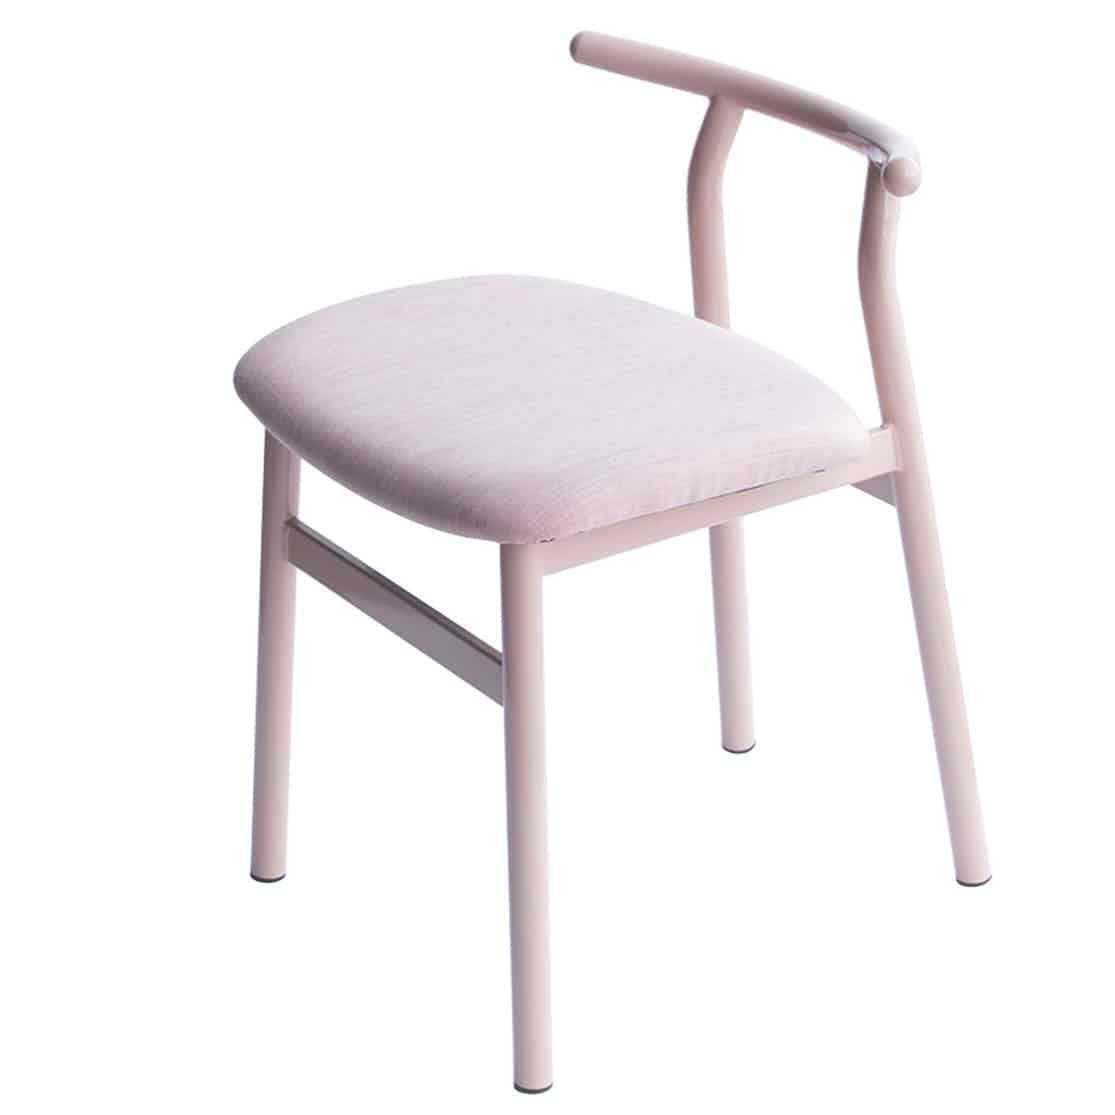 Division-12-brat-cafe-chair-haute-living